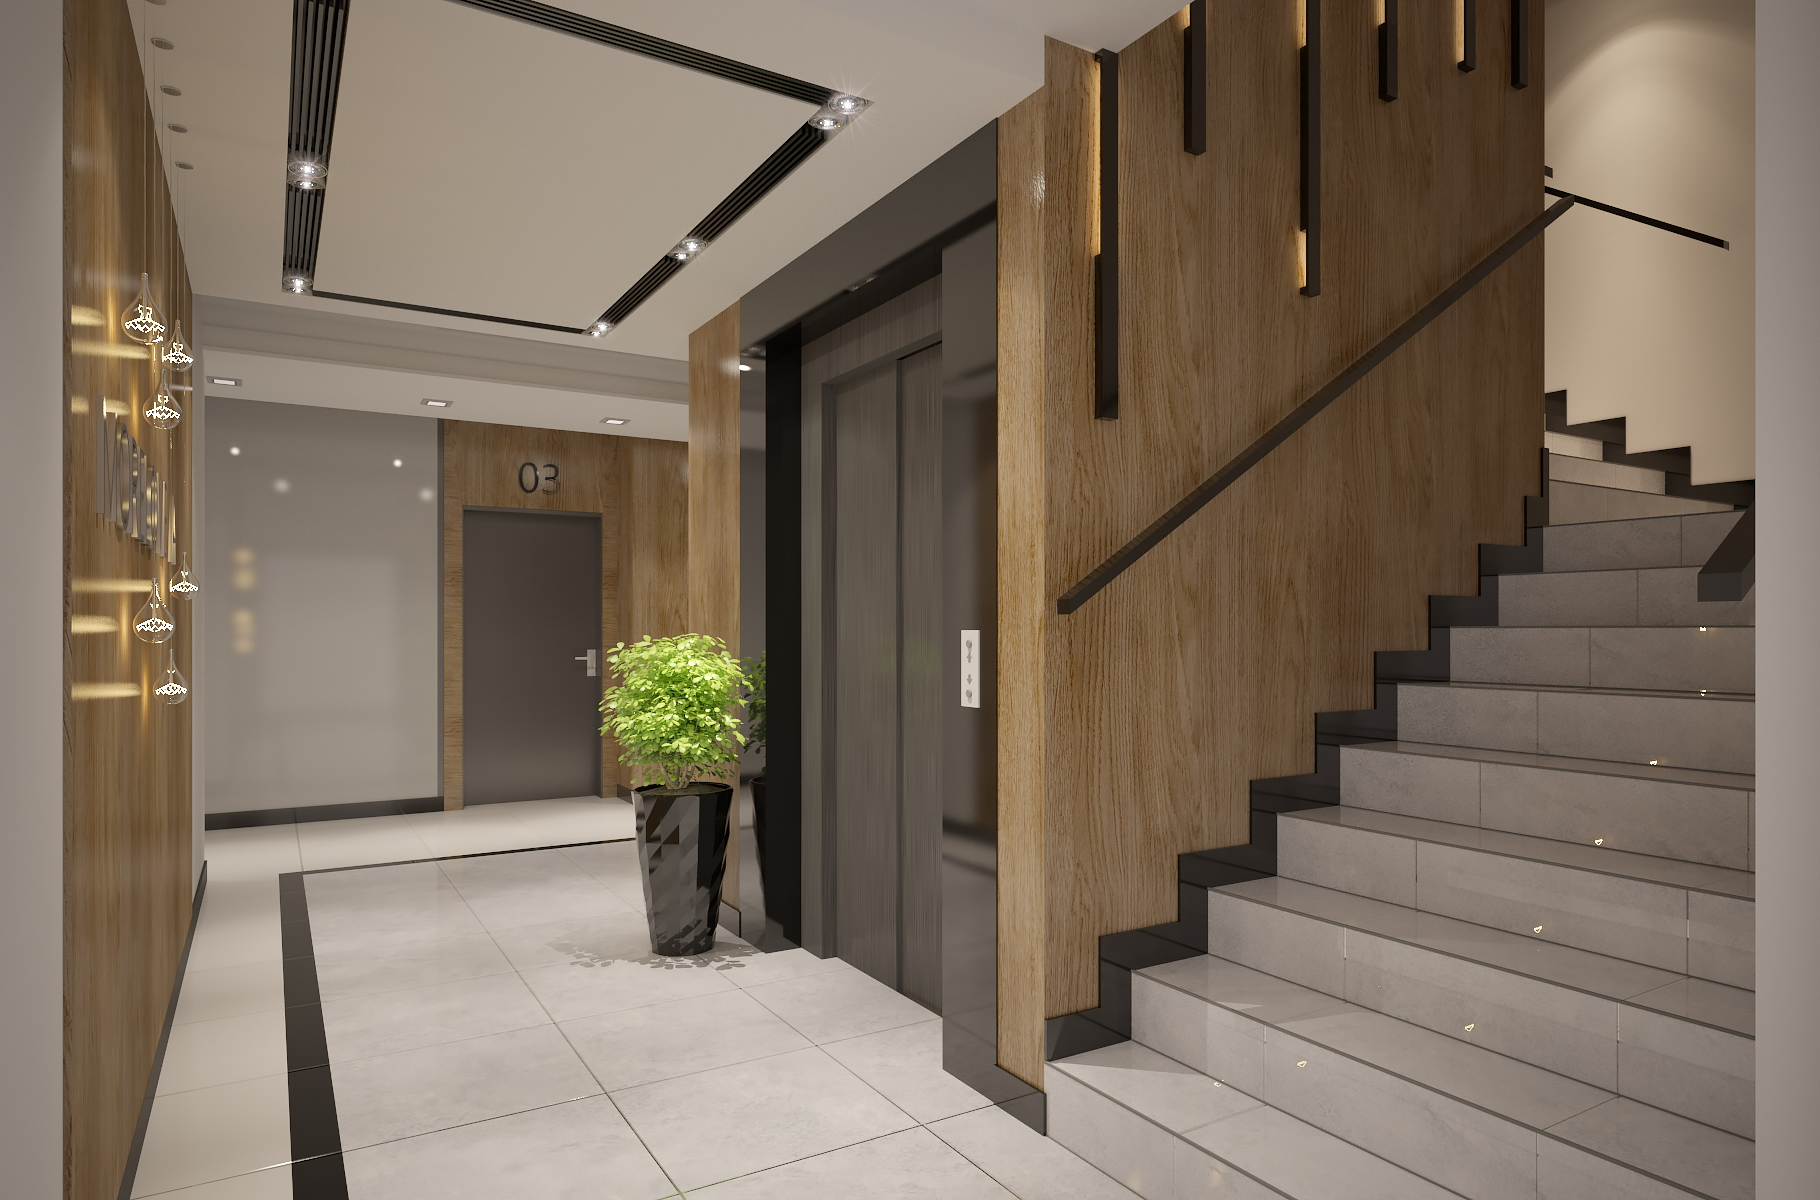 Interior Design Of Apartments Building Entrance Ha 3d Model